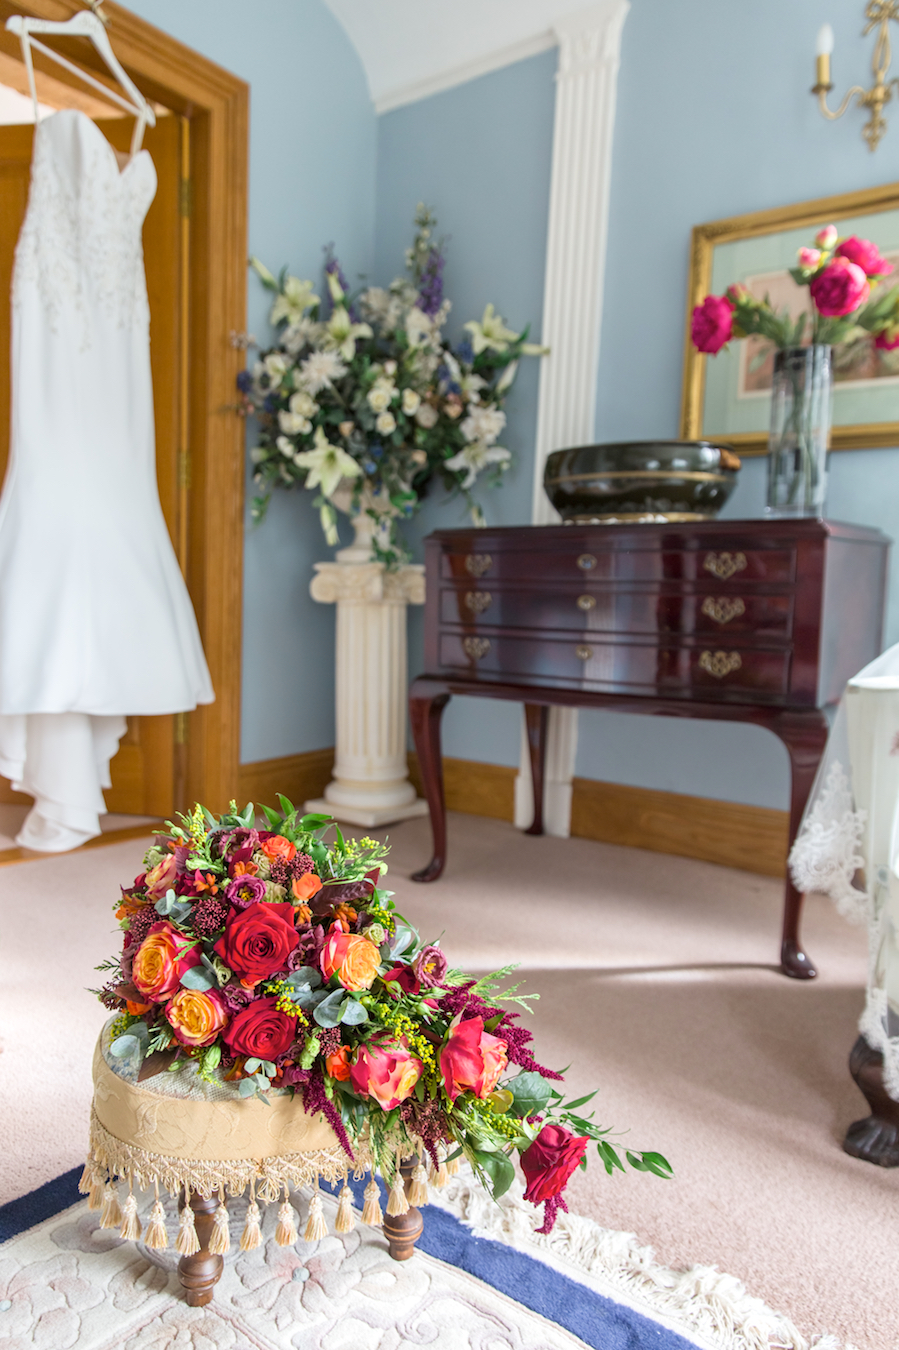 Real wedding by Ayshea Goldberg Photography at Layer Marney Tower (4)